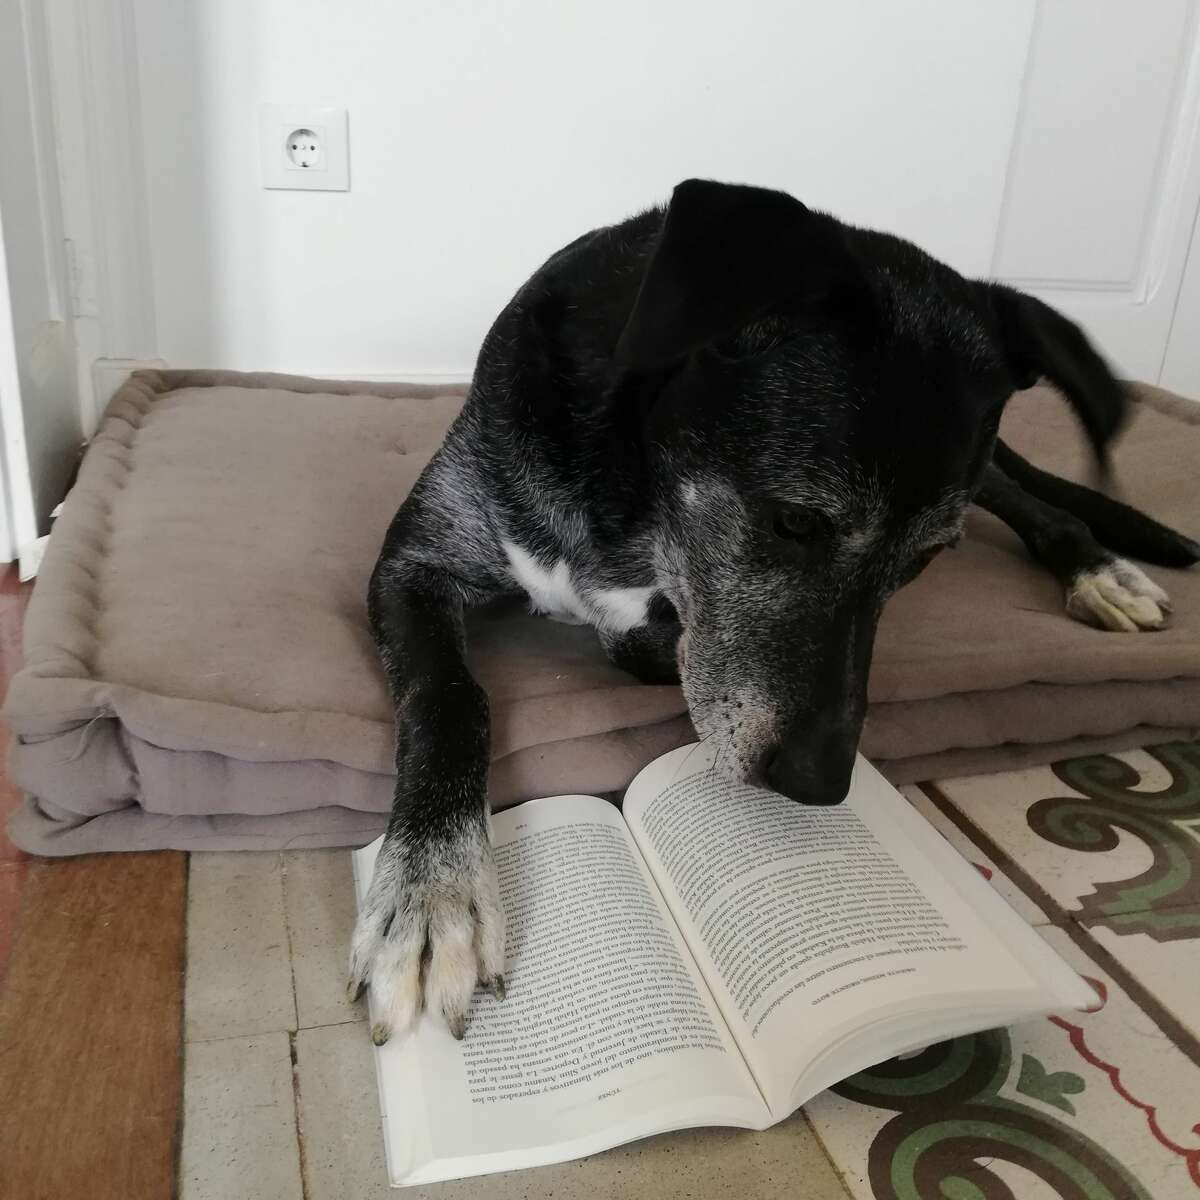 No treats until you finish your homework: Newton pores over a dog-eared book in Barcelona.